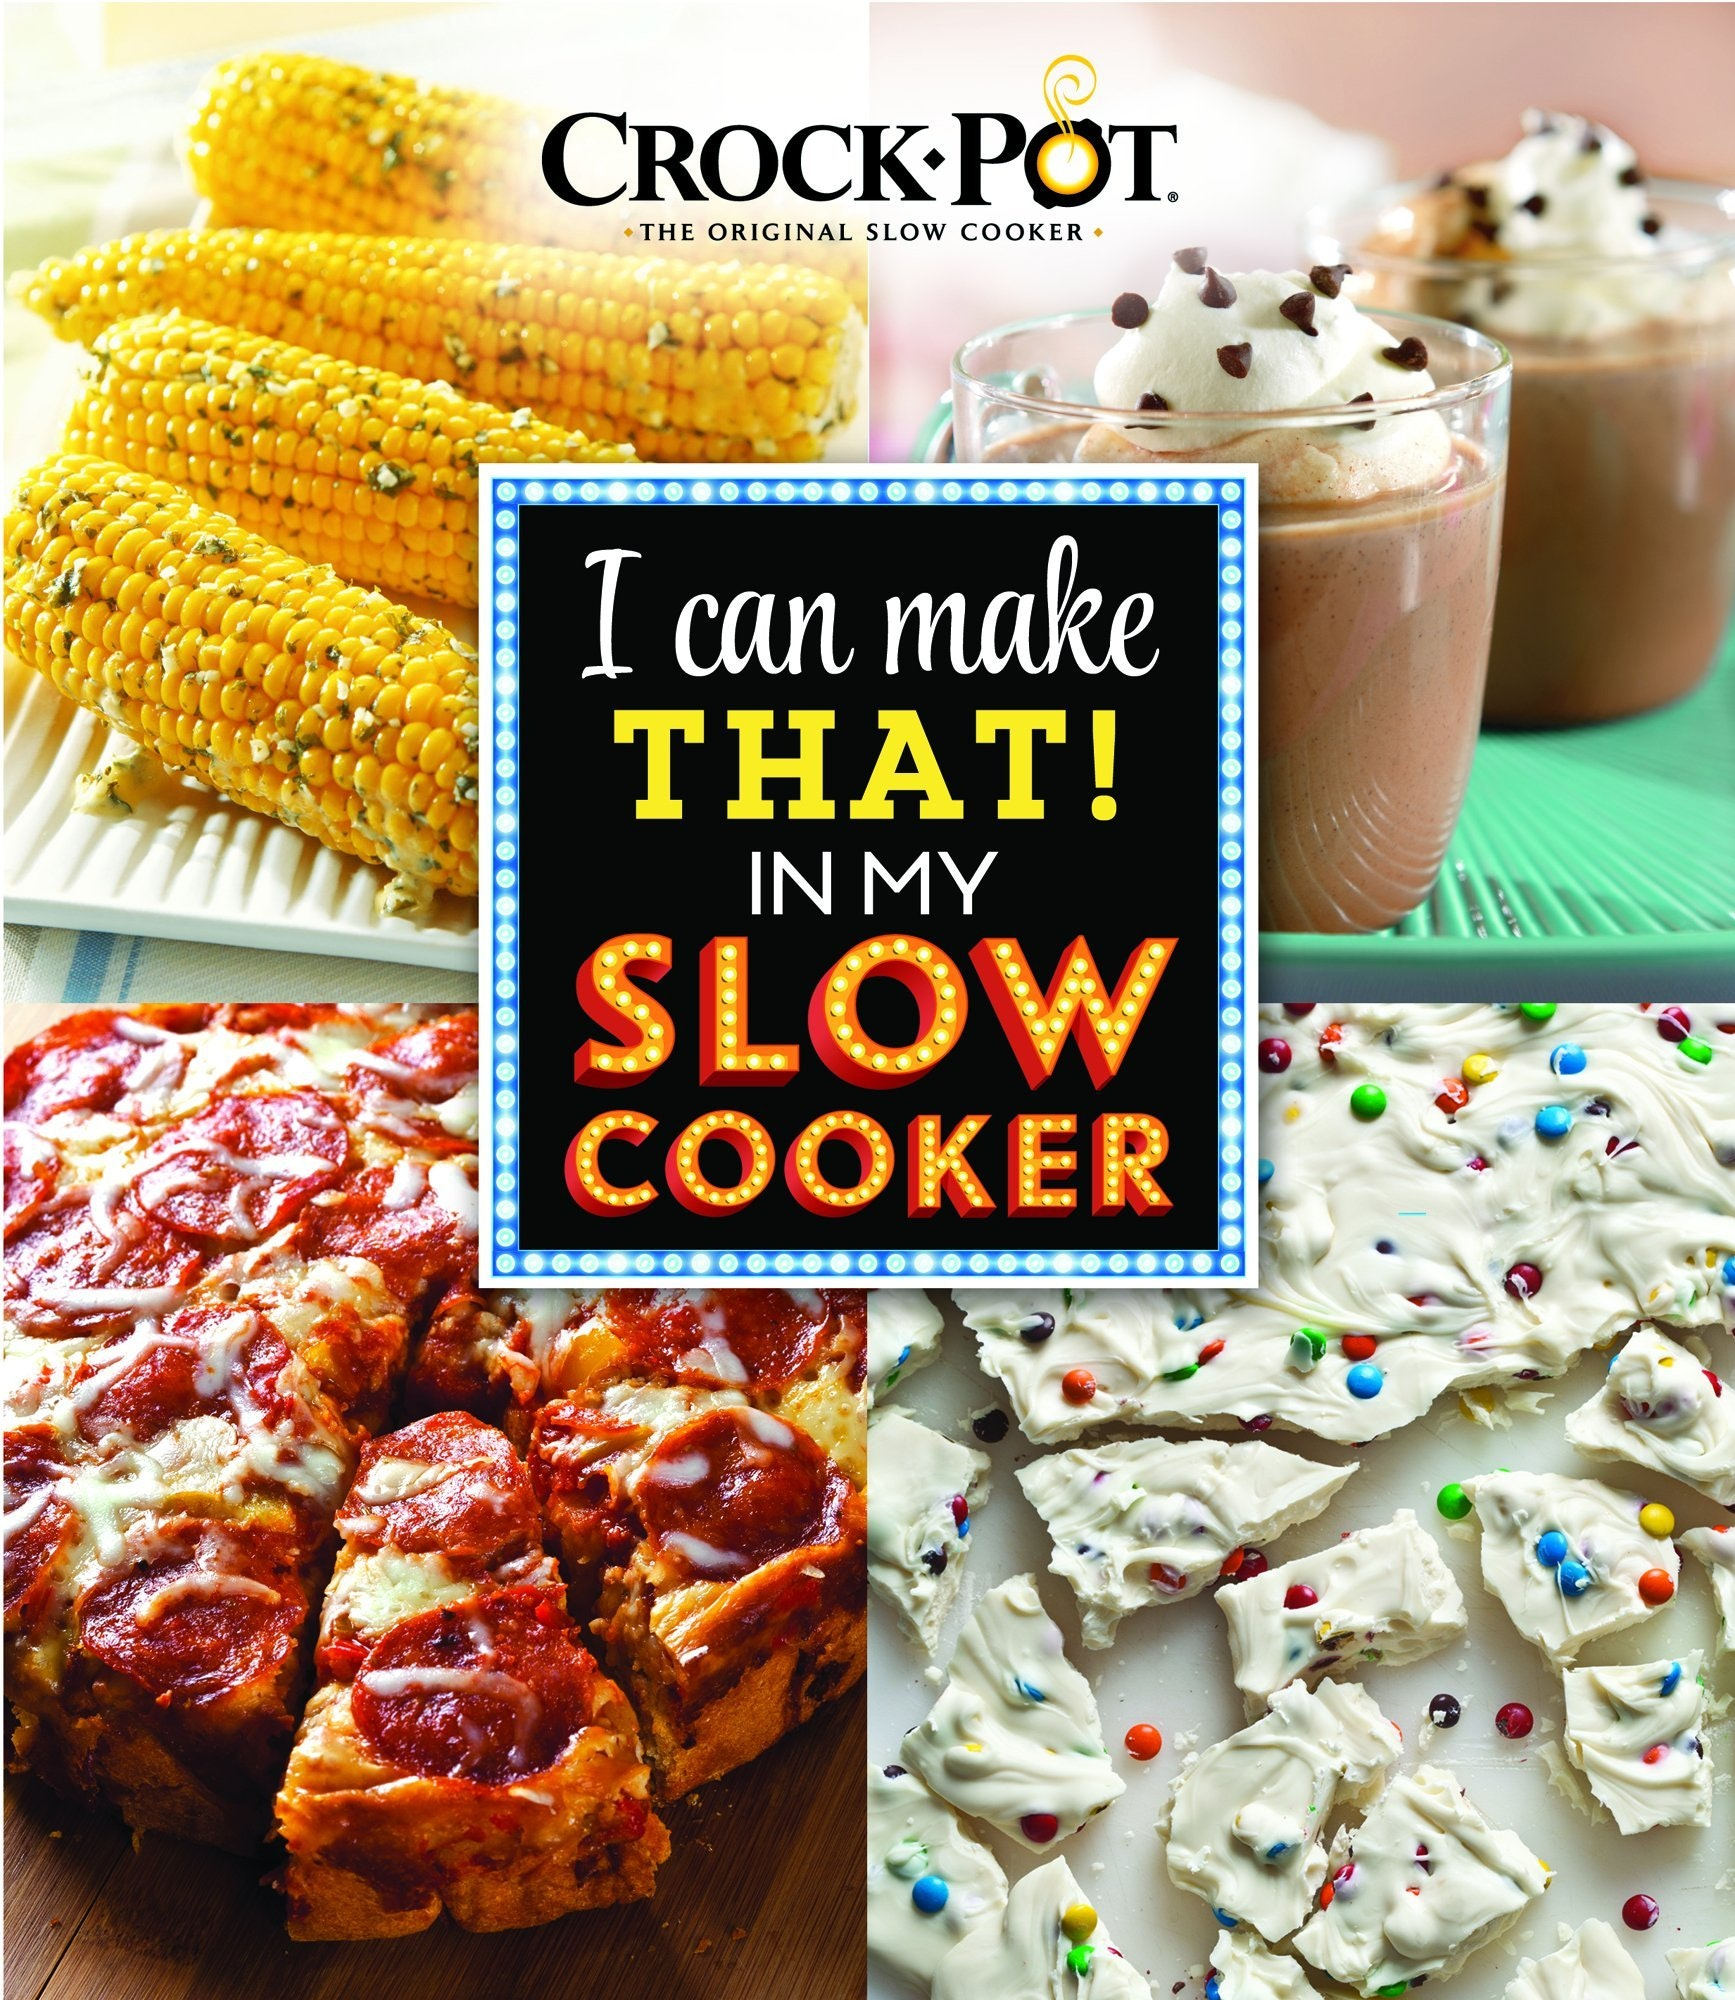 Crock-Pot I Can Make That! in My Slow Cooker